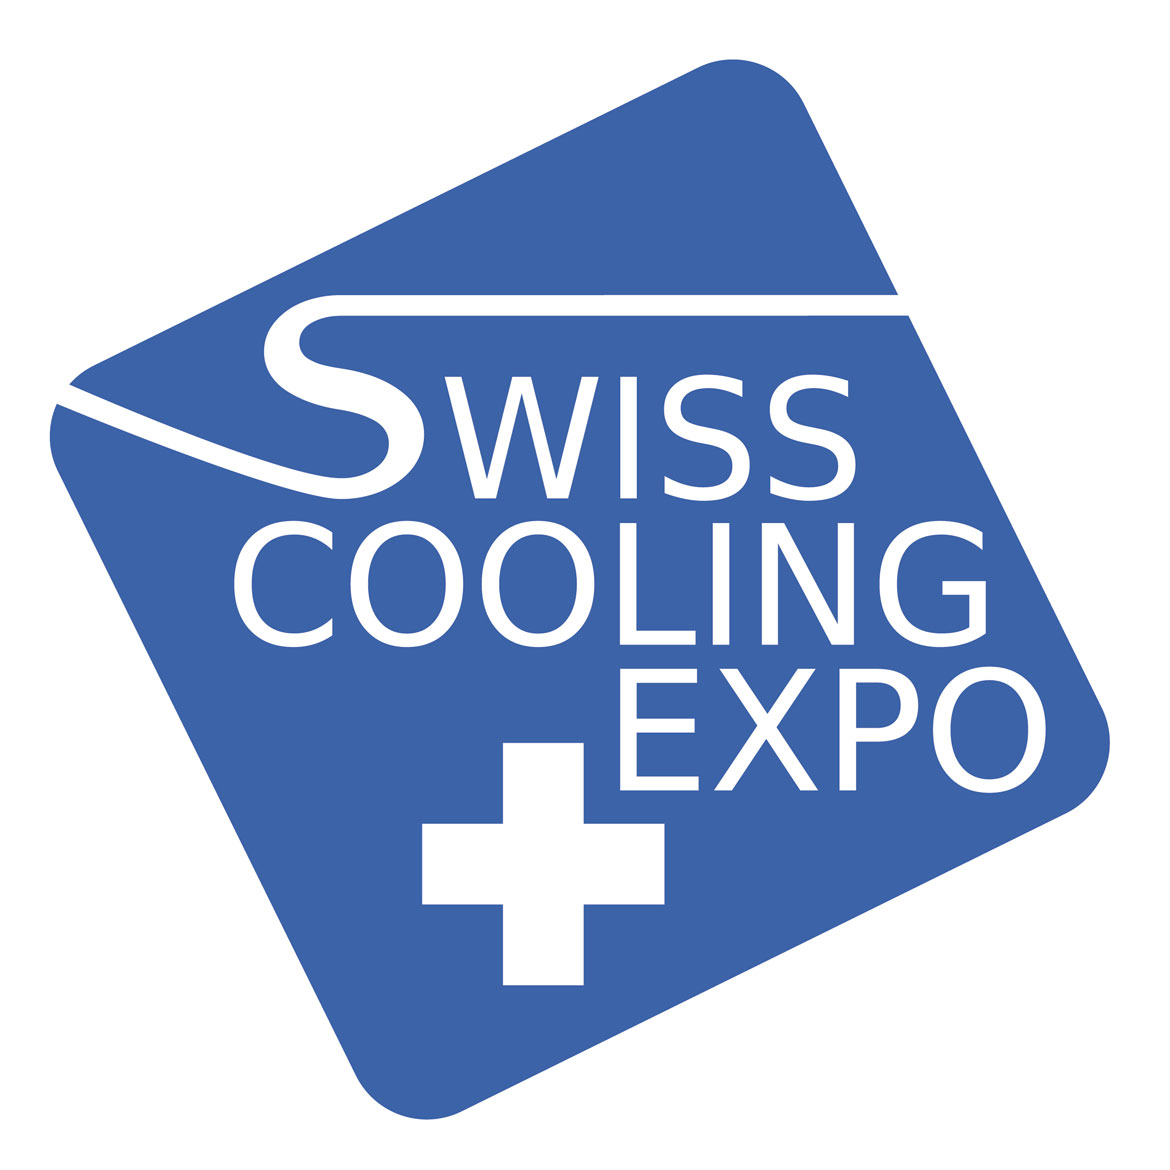 Swiss Cooling Expo-0